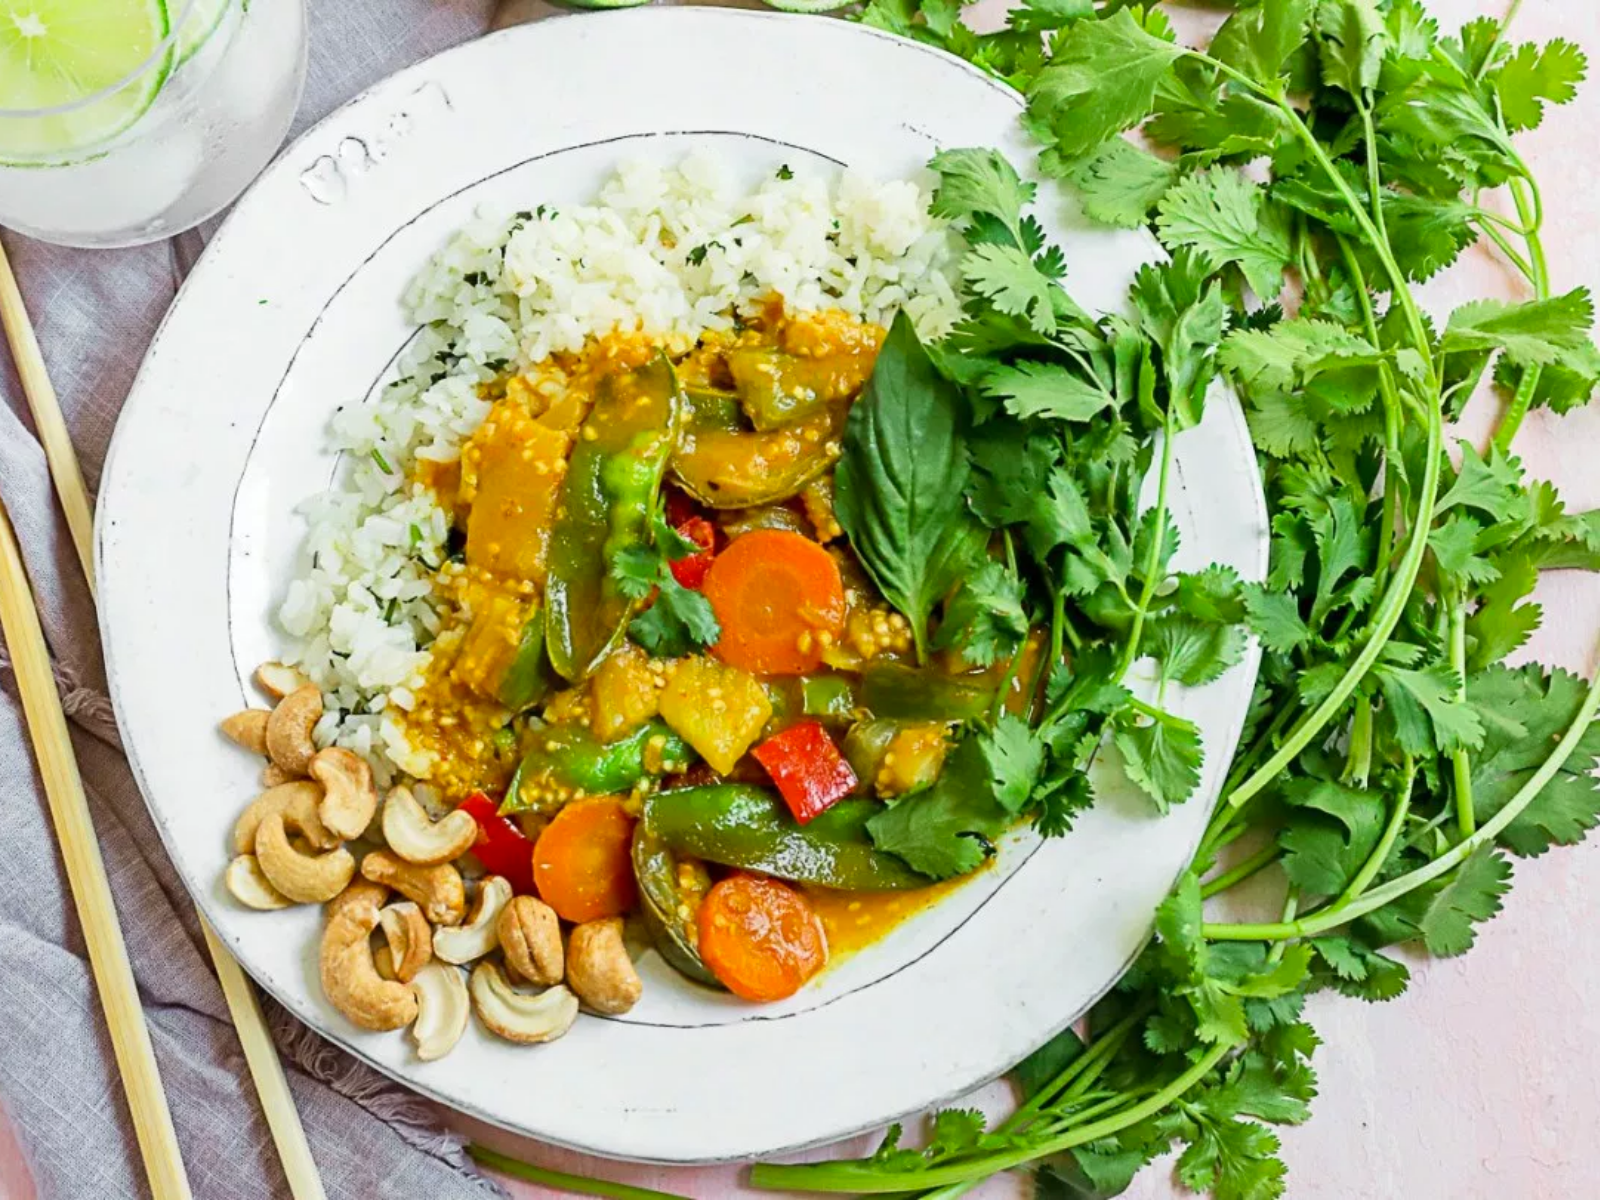 Vegan Thai pineapple yellow curry with vegetables